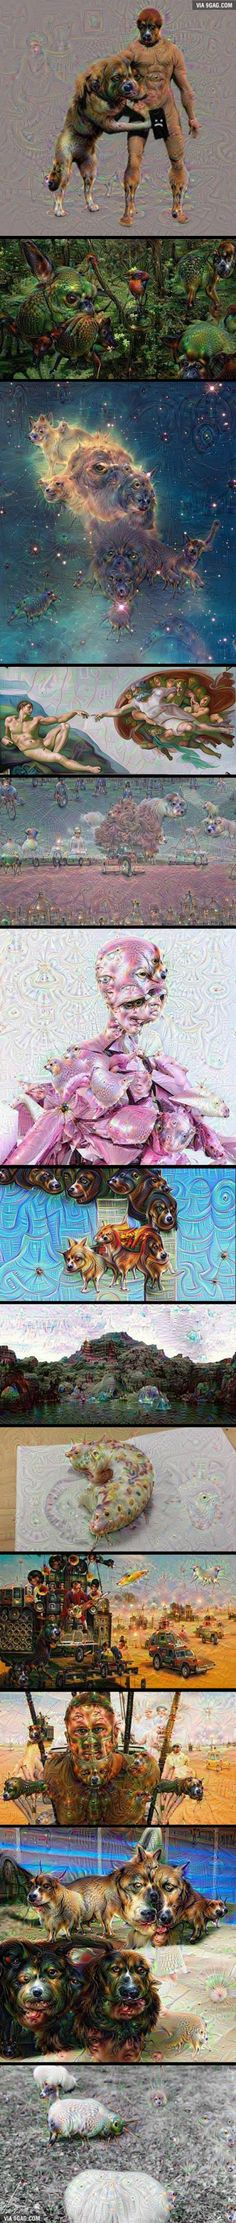 These are the best images from Google's Deepdream software